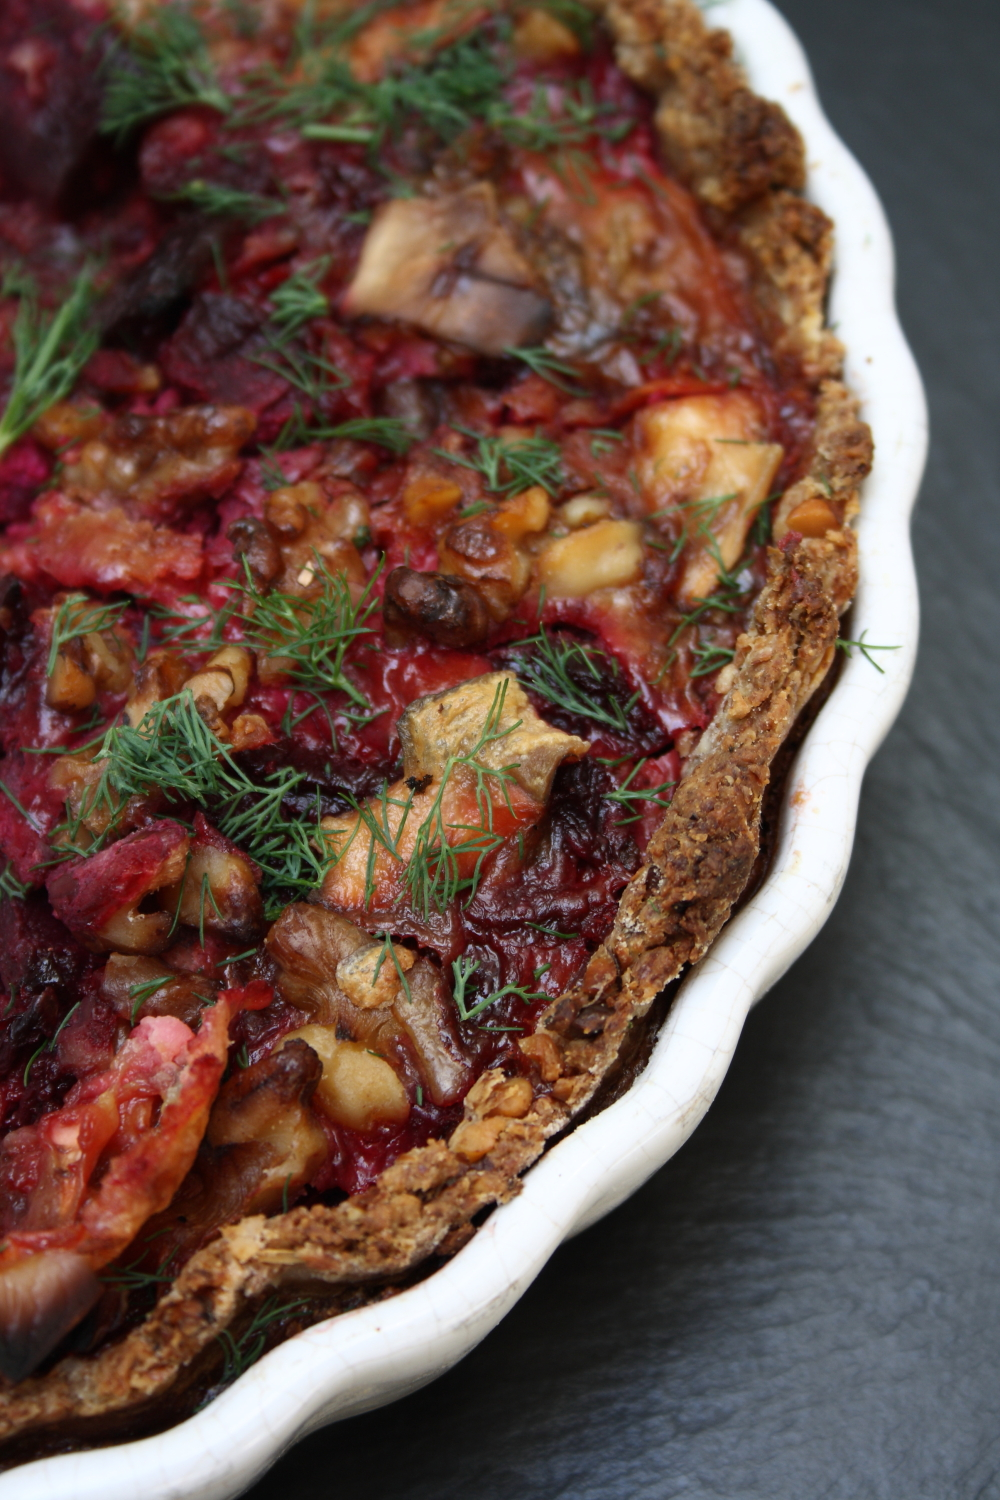 Roasted Beetroot Tart with Goat's Cheese, Walnuts, Oatmeal Crust ...